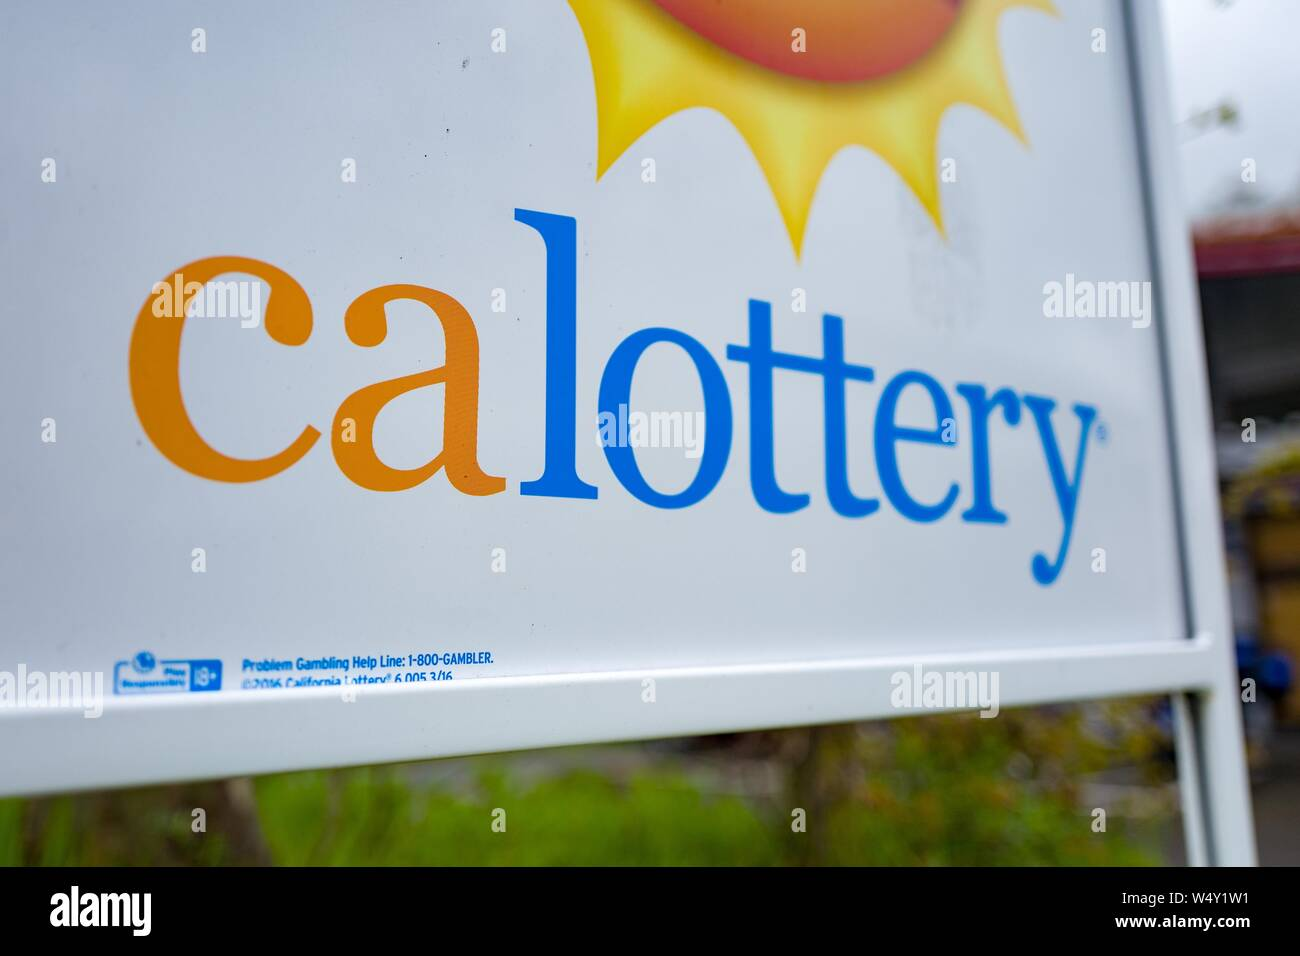 Close-up of sign for CALottery or the California Lottery in